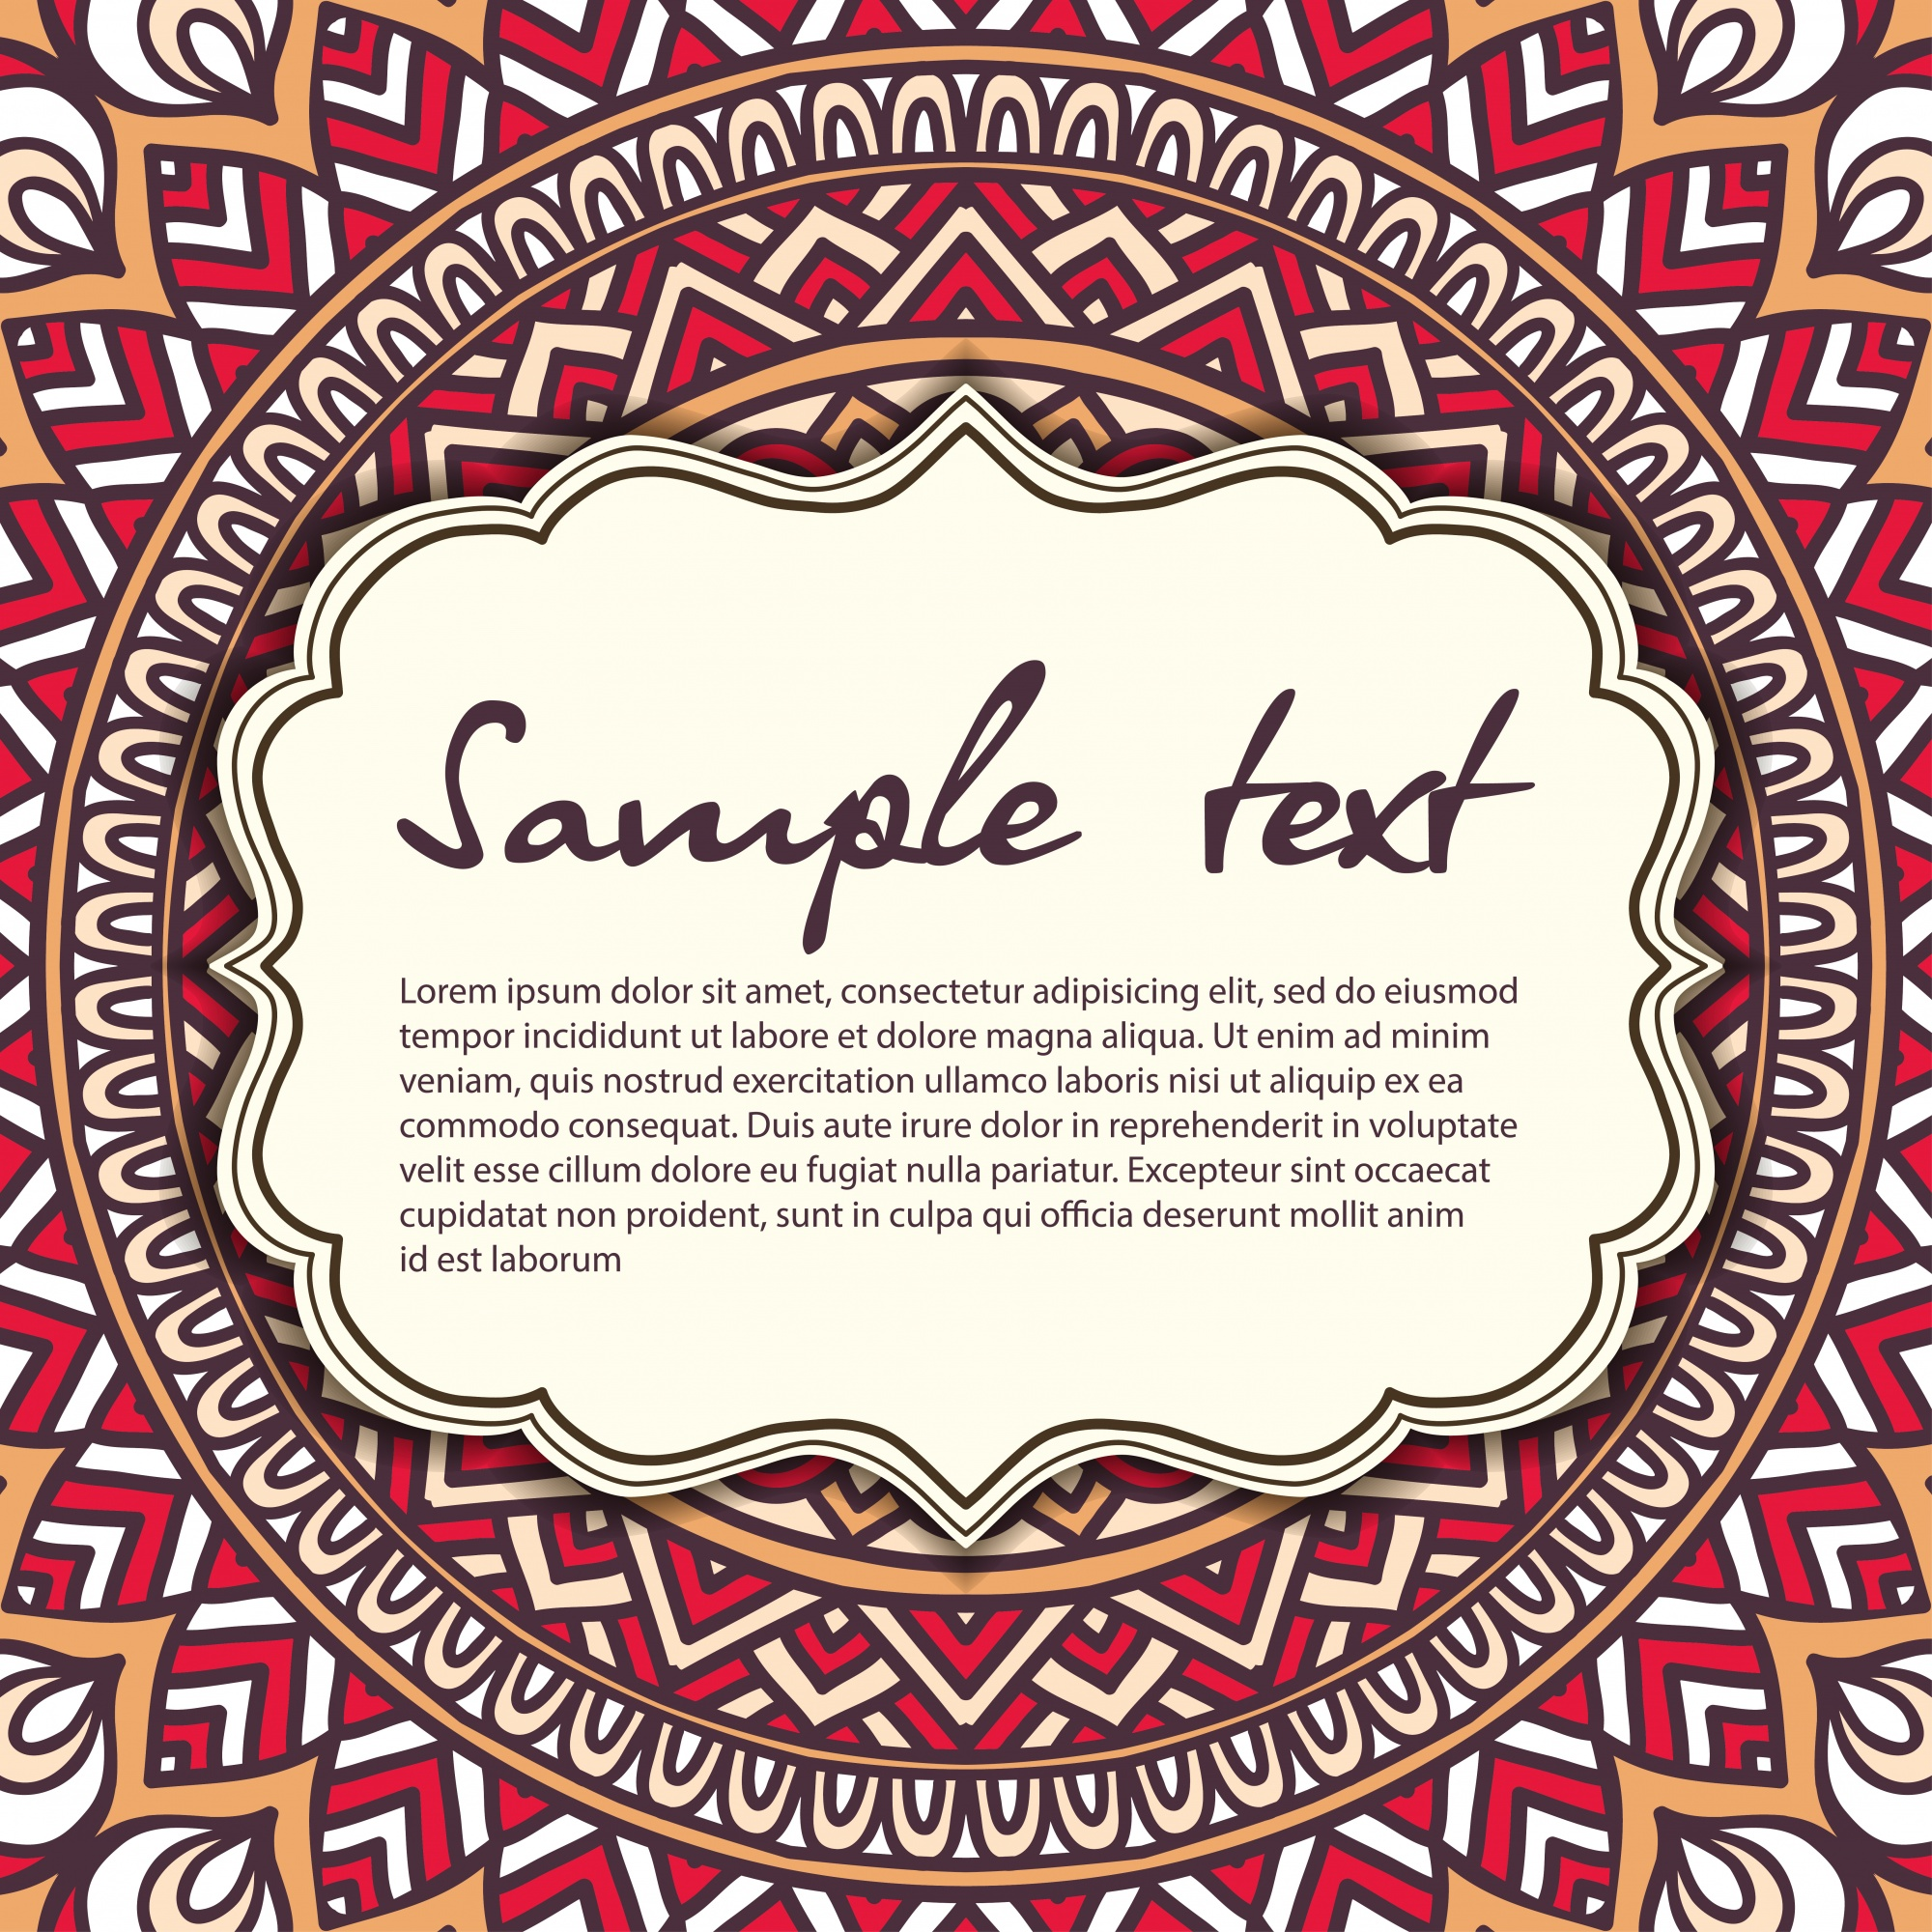 Vintage mandala design with text template